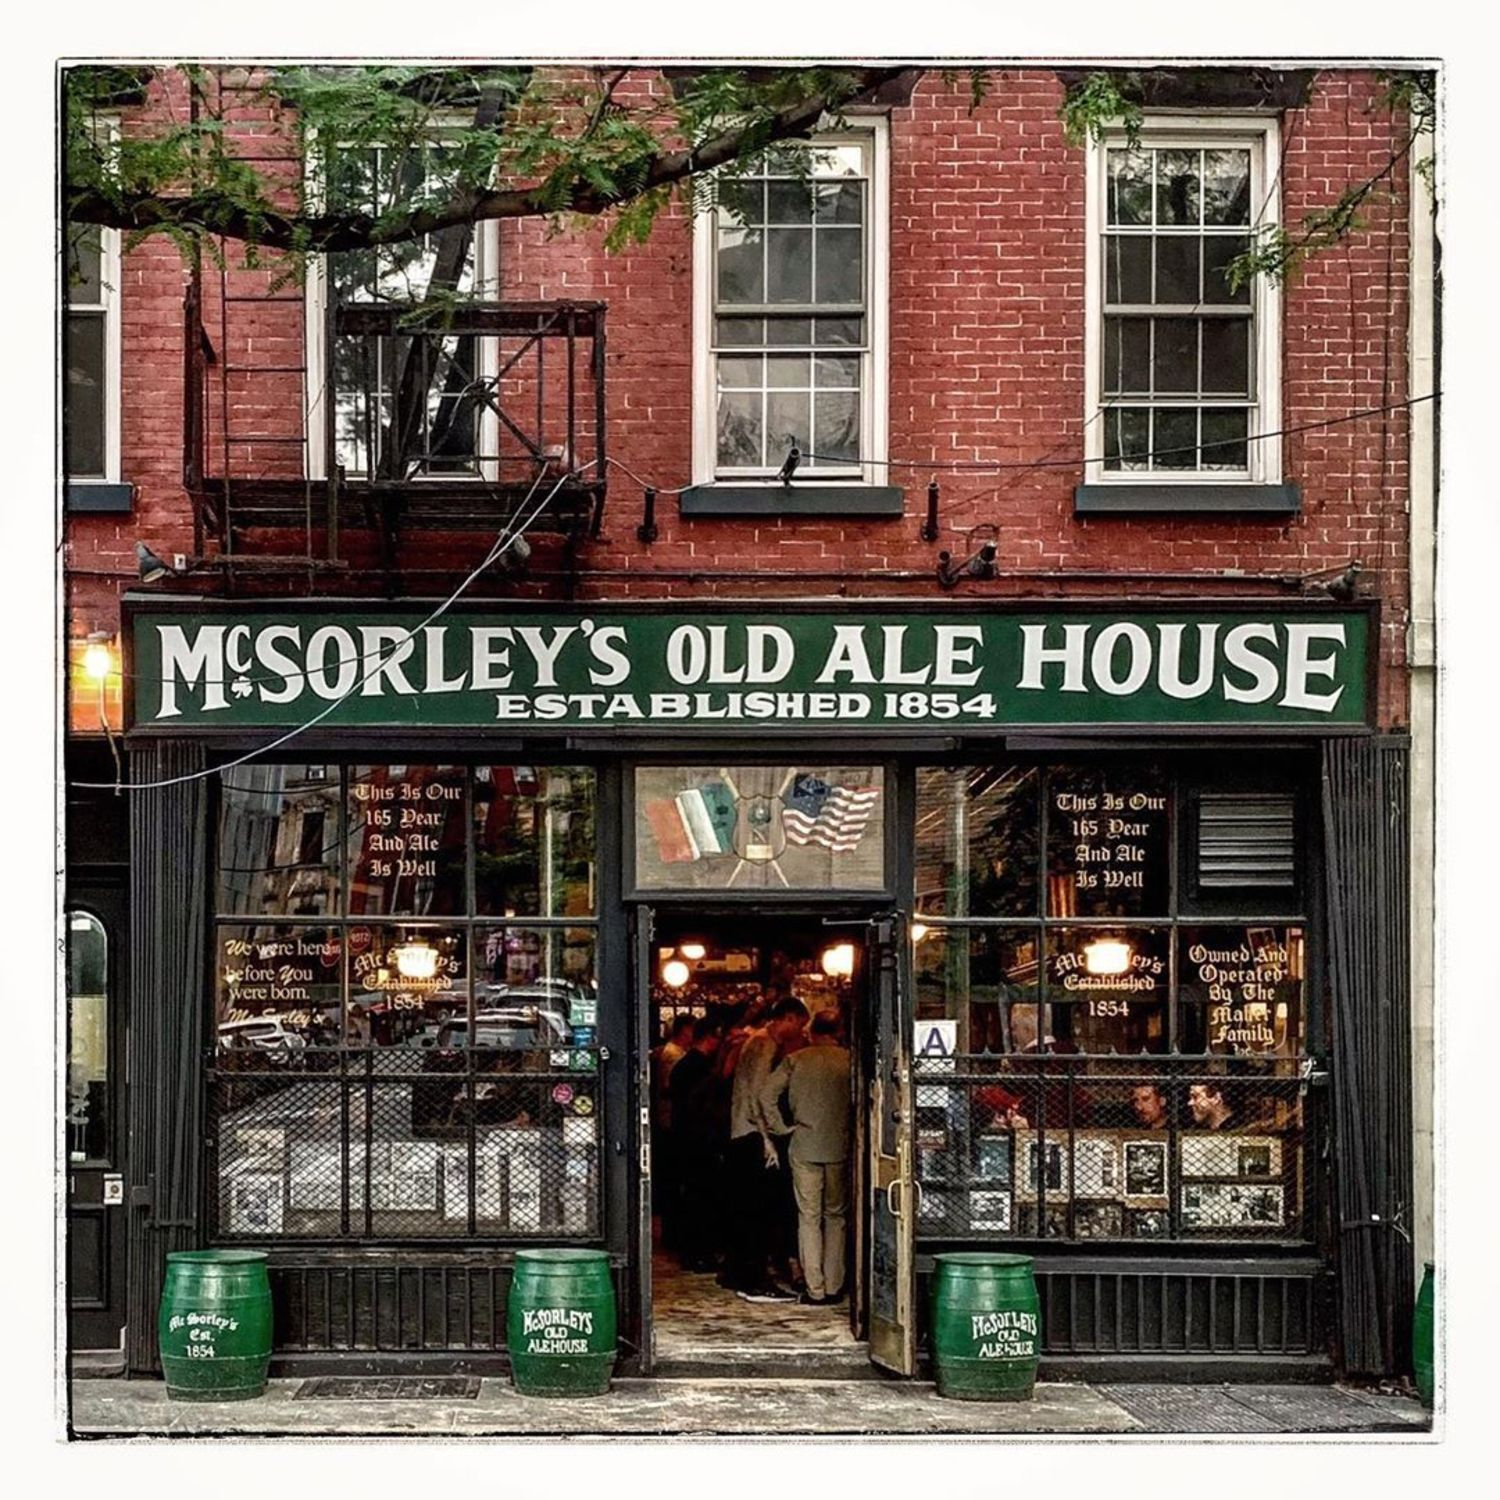 E 7th Street, New York, NY ... The fabled NYC watering hole that lent its name to Joseph Mitchell's 1943 classic McSorley's Wonderful Saloon, a favorite of mine in the canon of New York literature.